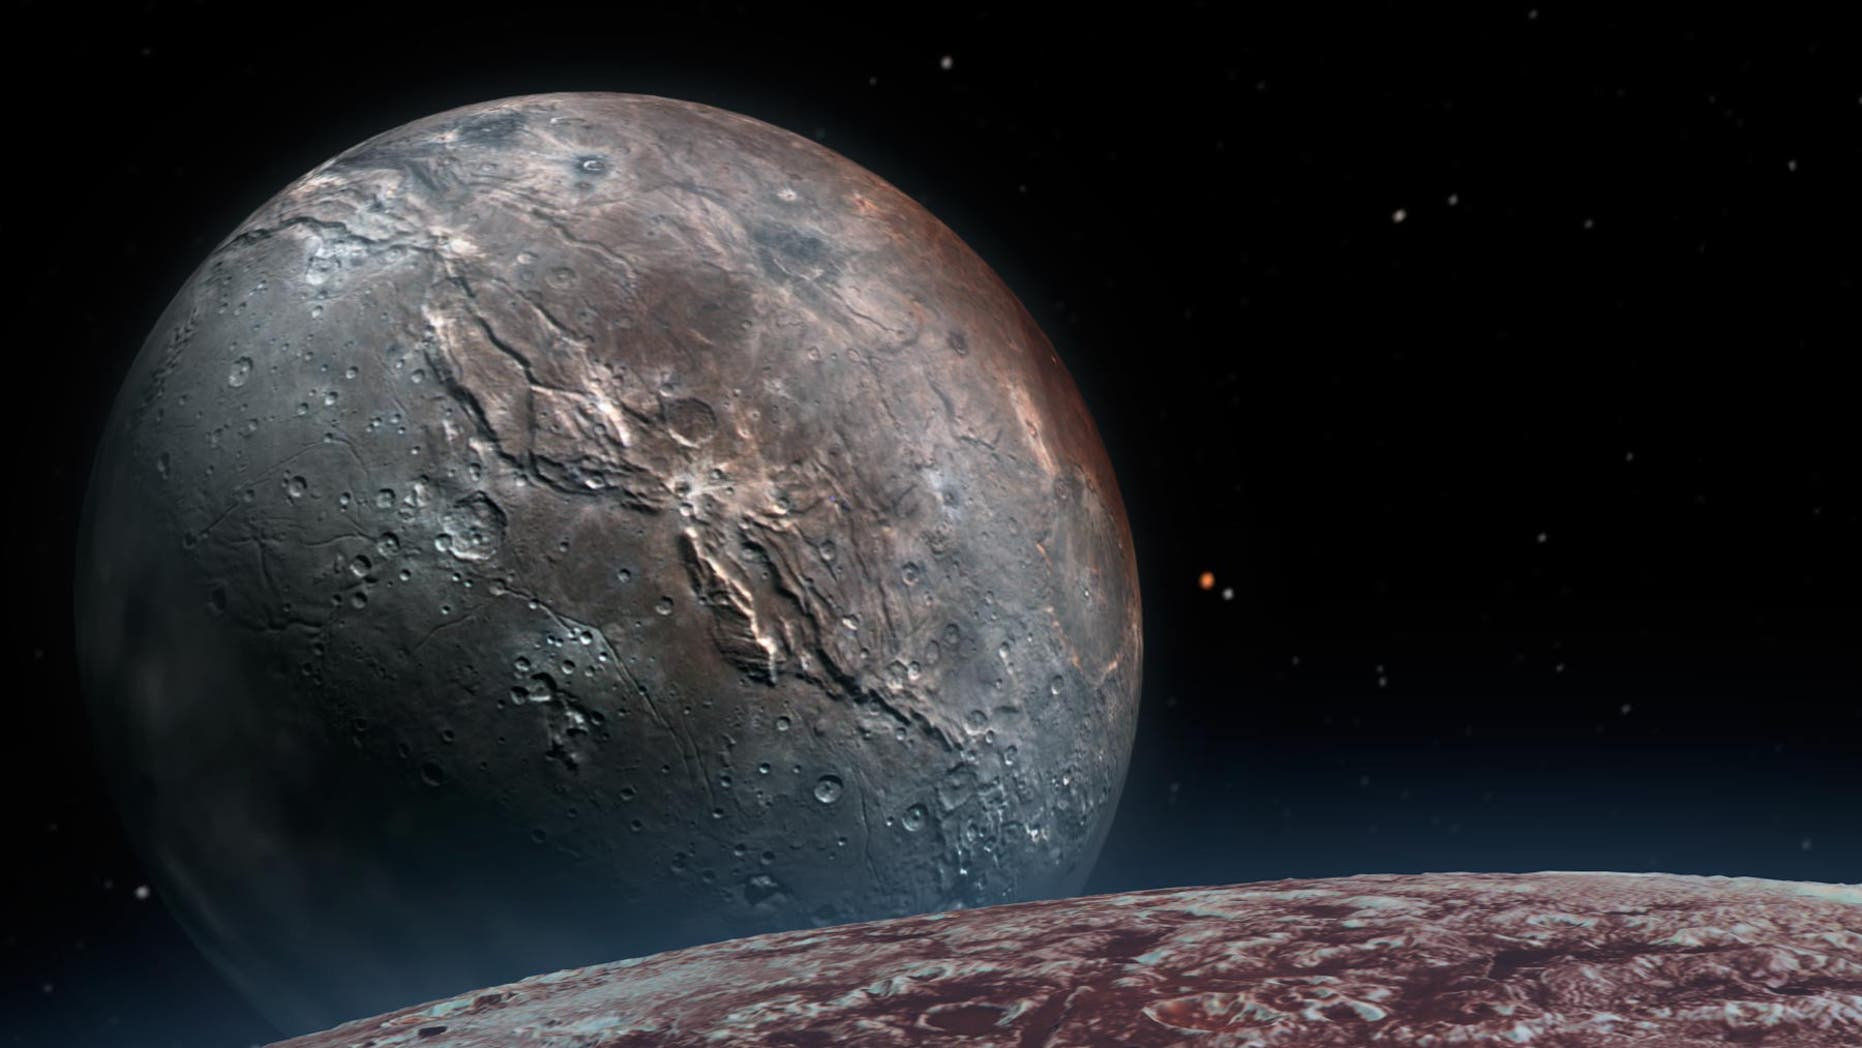 Viewers can explore distant Pluto with a new addition to the New York Times virtual reality app, using only a smartphone and a Google Cardboard virtual reality viewer (or just the smartphone).